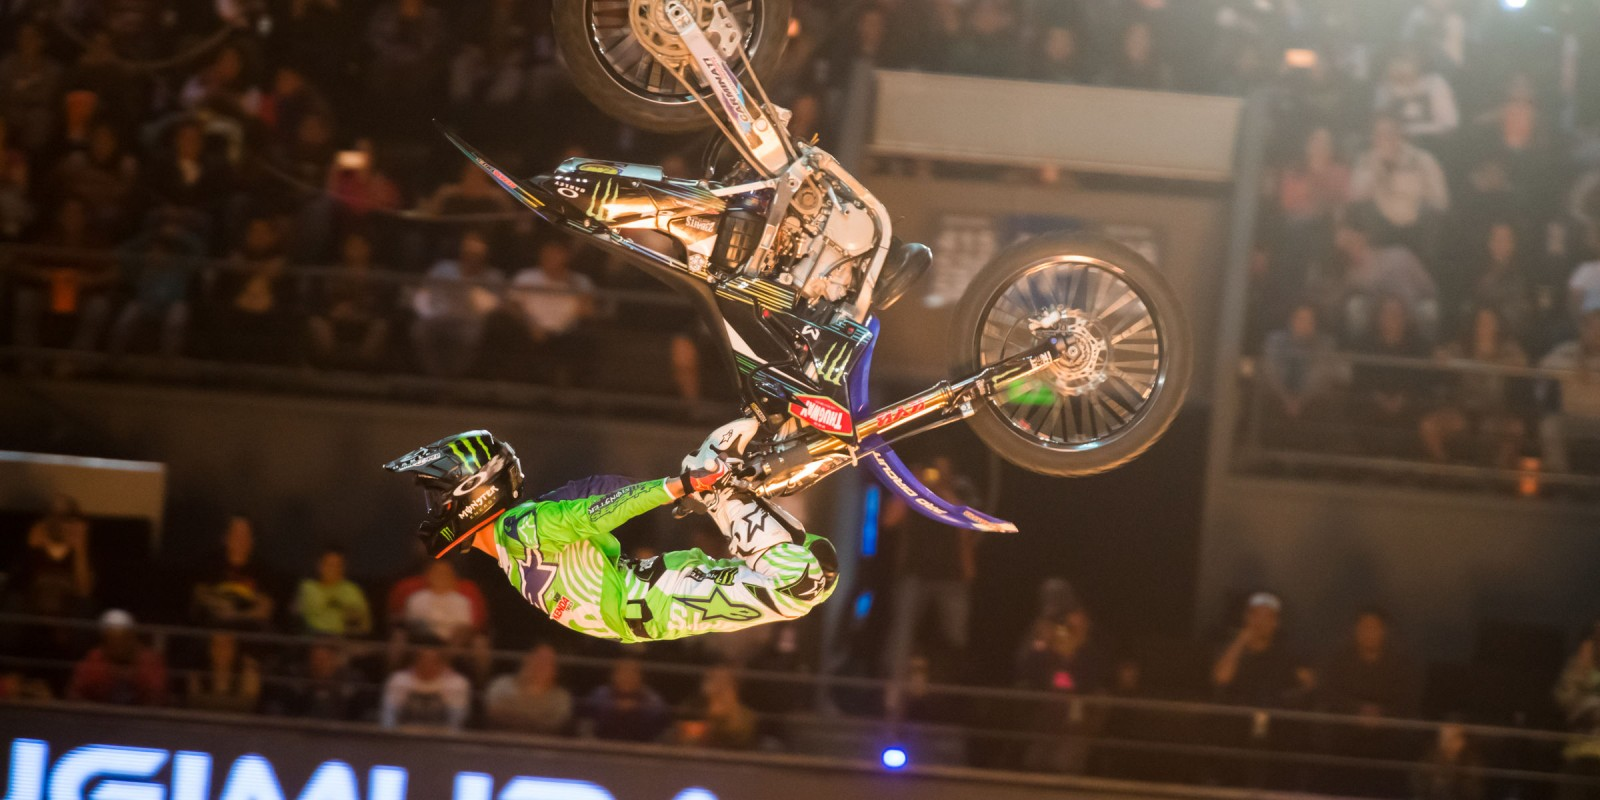 FMX Competition XPilots by Monster Energy held in Mexico City